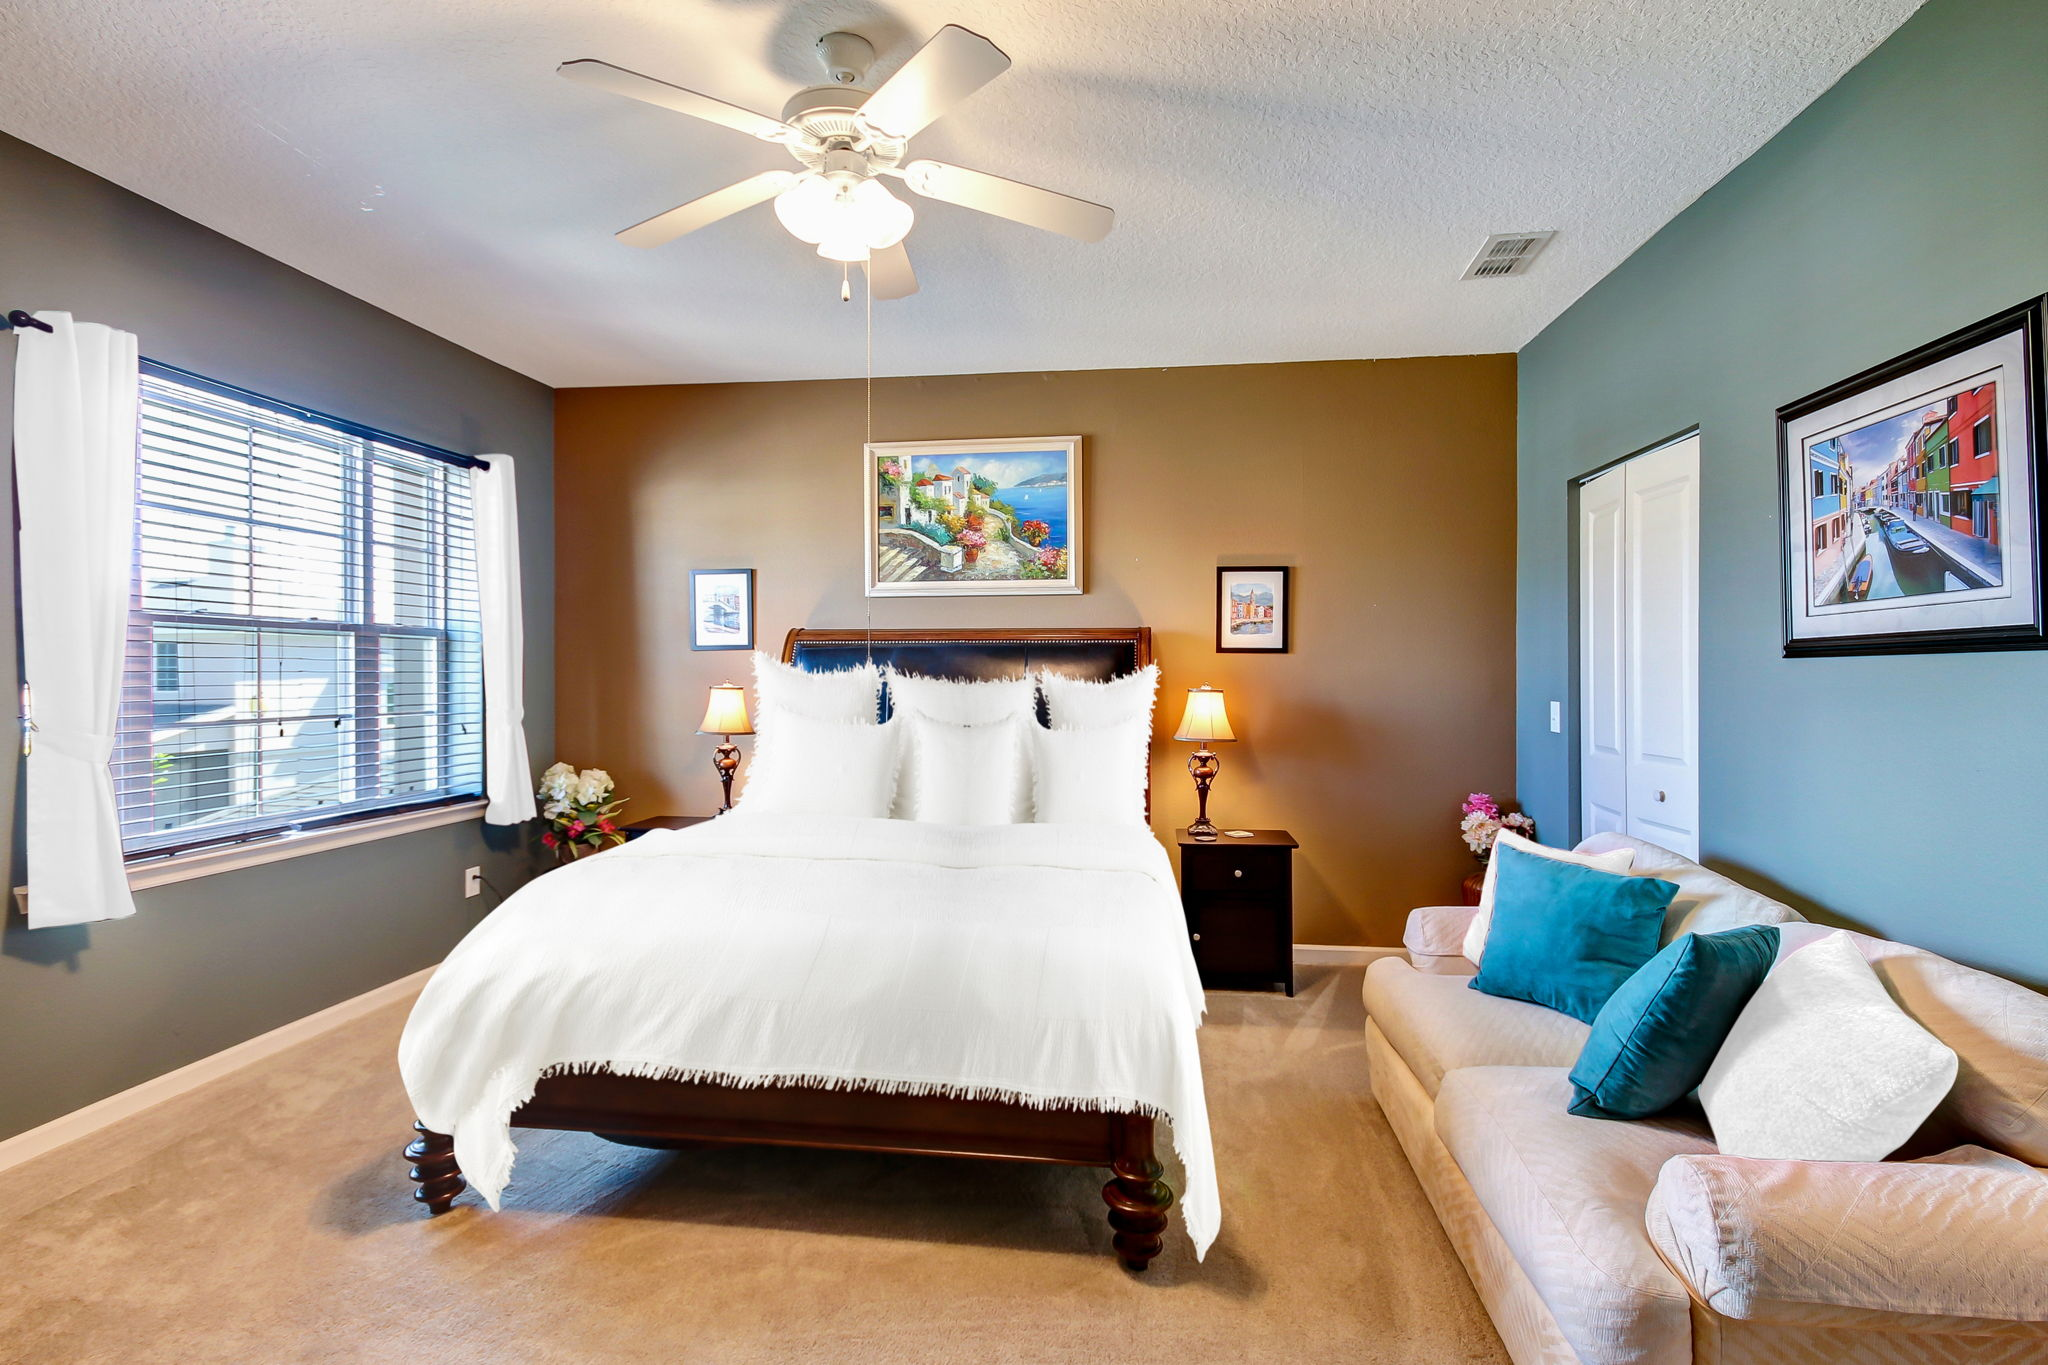 Guest bedrooms can accommodate large beds and furniture